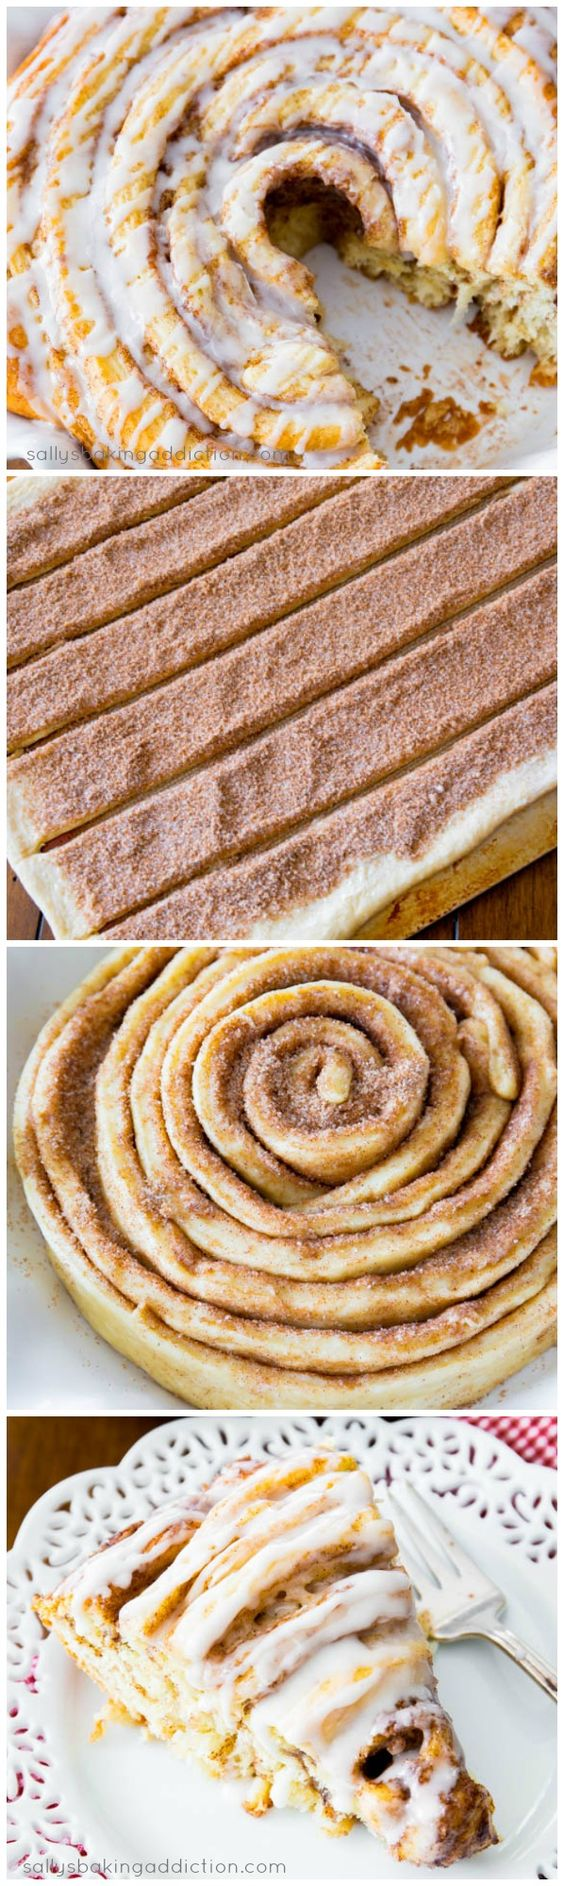 Giant Cinnamon Roll Cake Recipe | Sally's Baking Addiction - The BEST Cinnamon Rolls Recipes - Perfect Treats for Breakfast, Brunch, Desserts, Christmas Morning, Special Occasions and Holidays #cinnamonrolls #cinnamon #cinnamontreats #cinnamonrollsrecipes #cinnamondesserts #breakfastrolls #sweetrolls